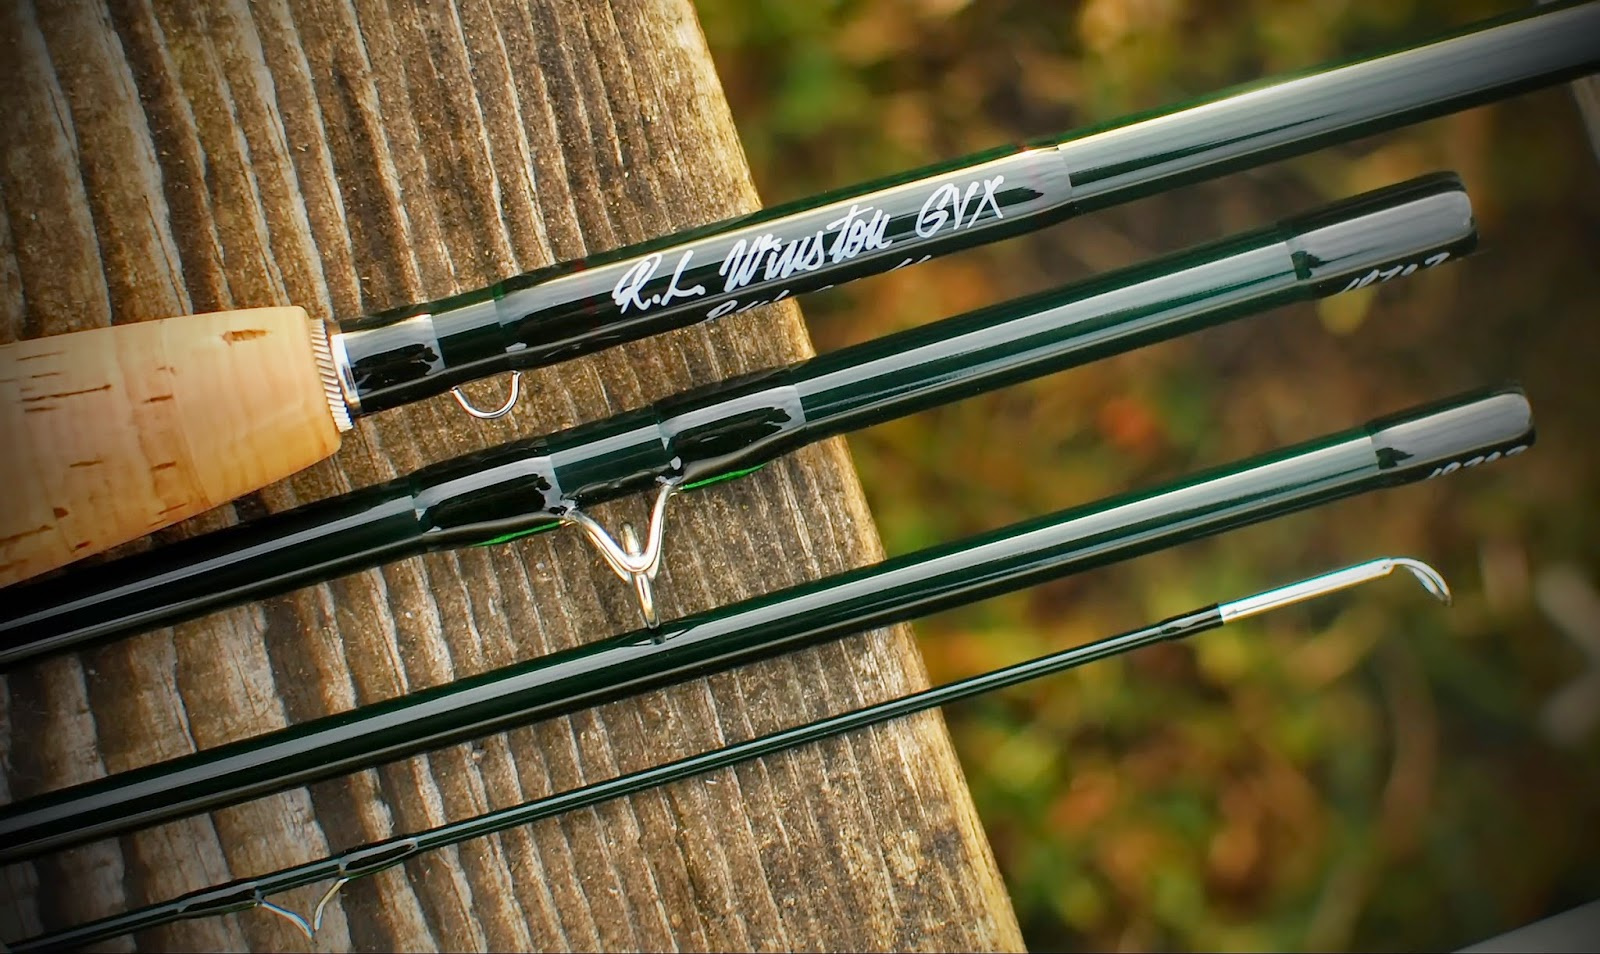 Handcrafted Graphite And Fiberglass Fly Rods R L Winston Gvx